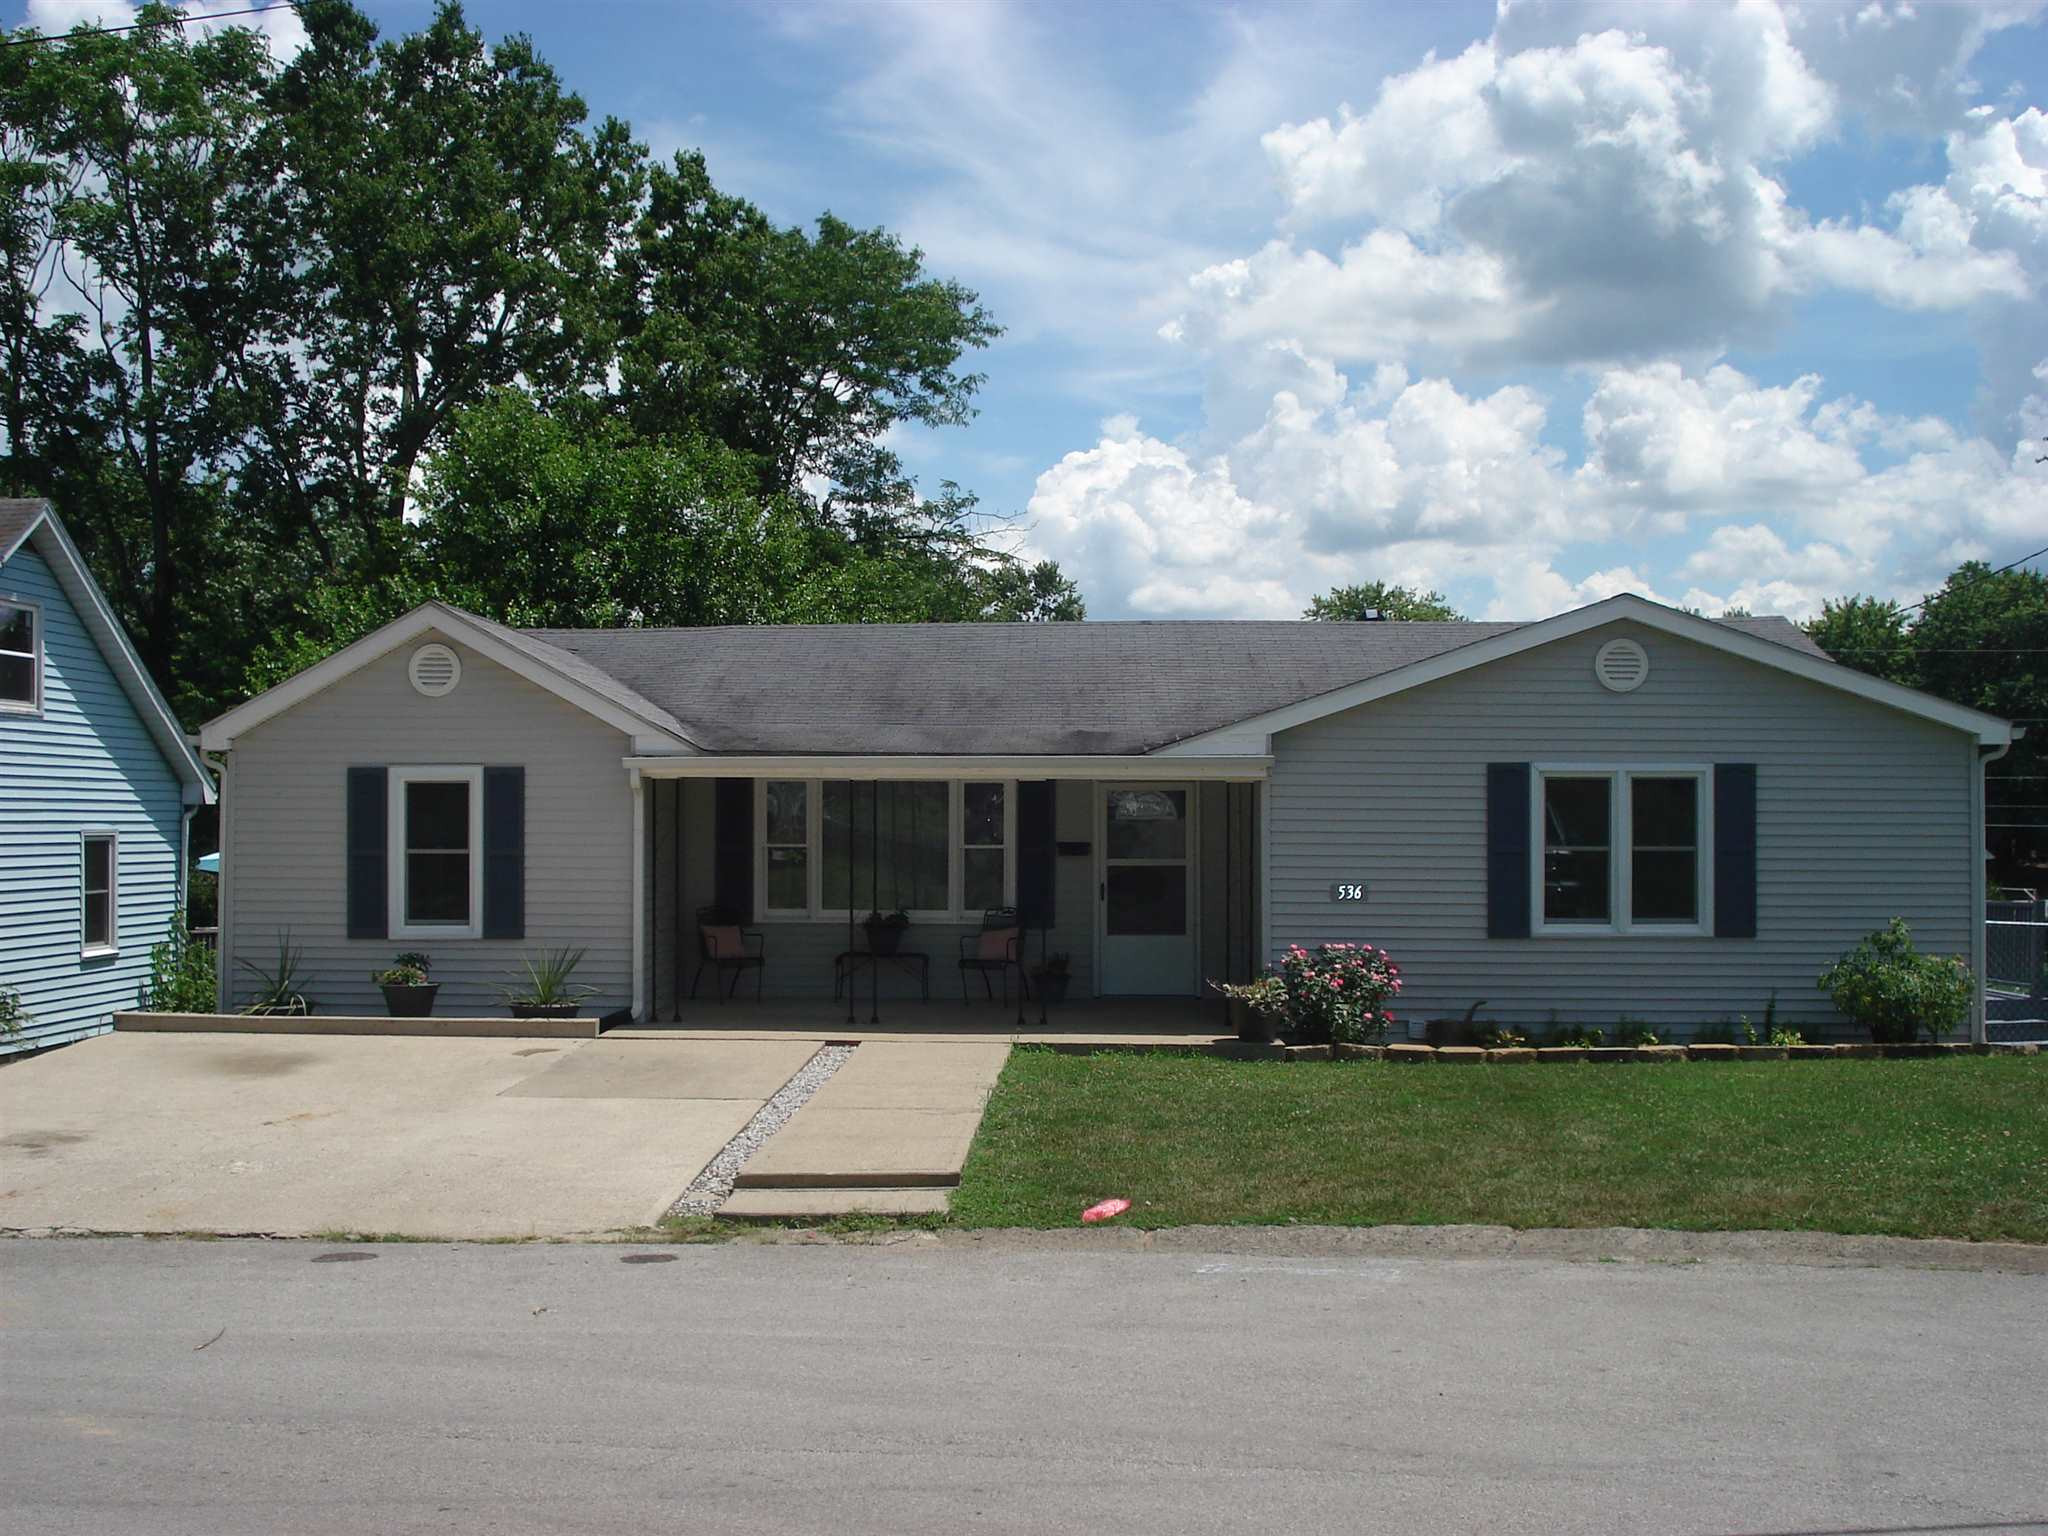 Photo 1 for 536 S Elmarch Ave Cynthiana, KY 41031